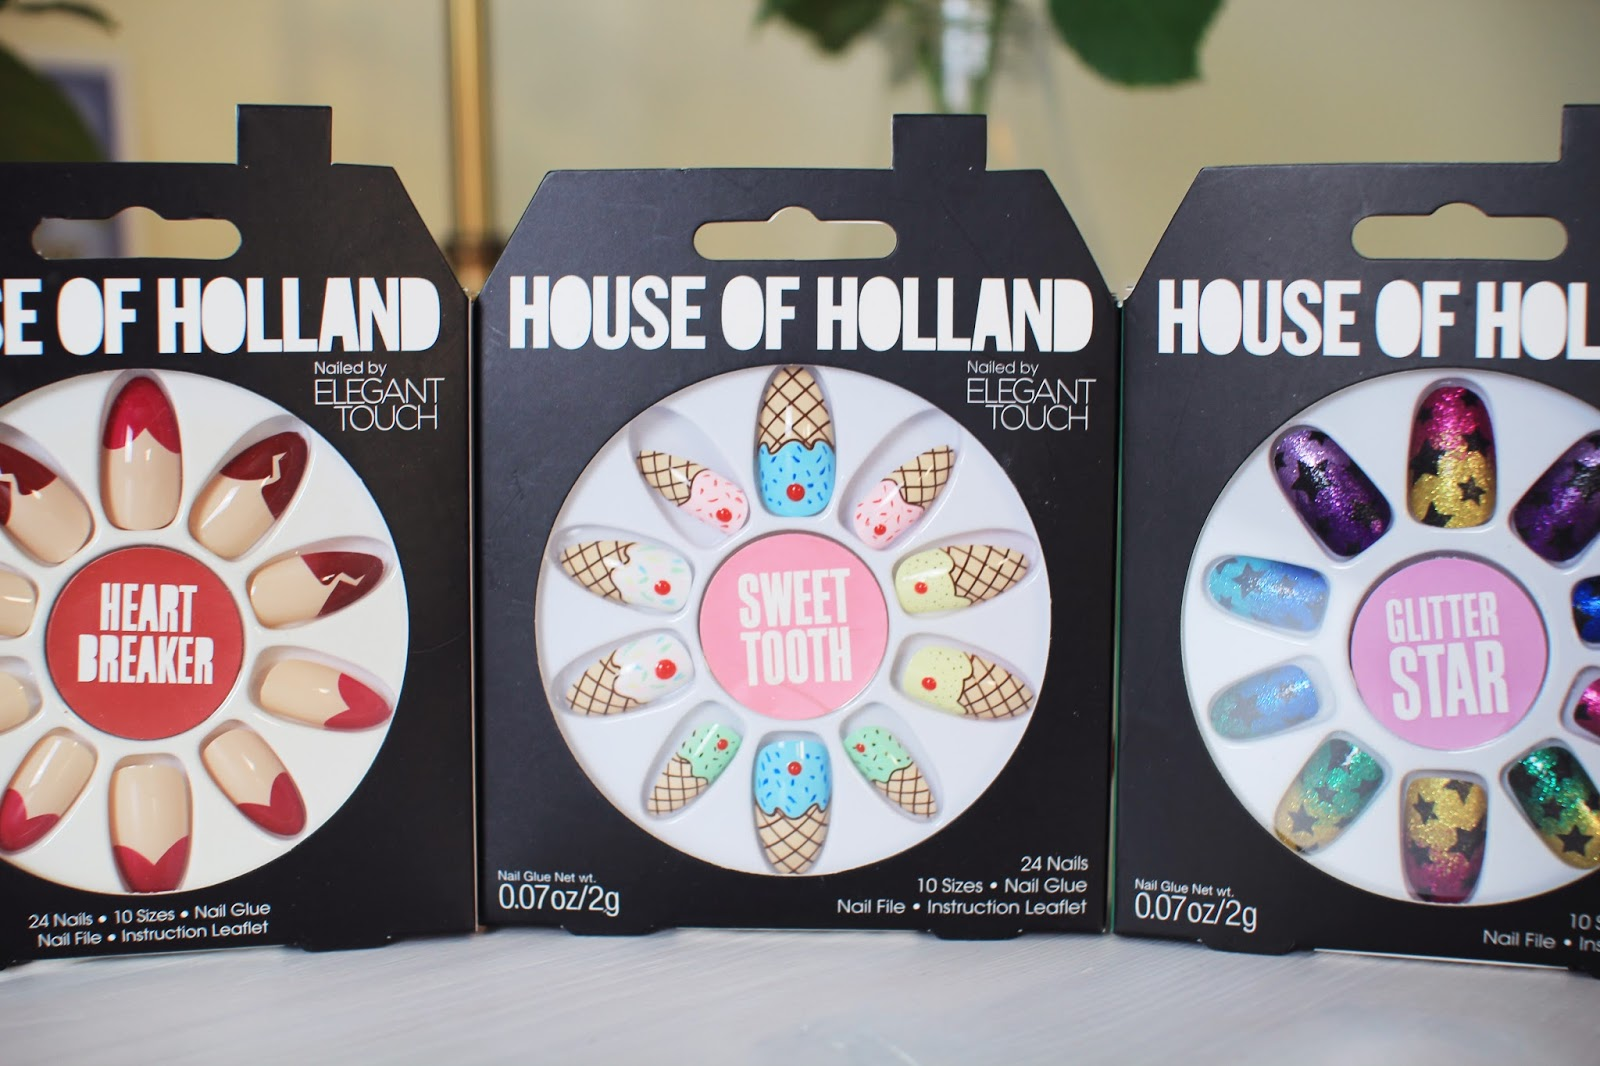 Elegant Touch House of Holland